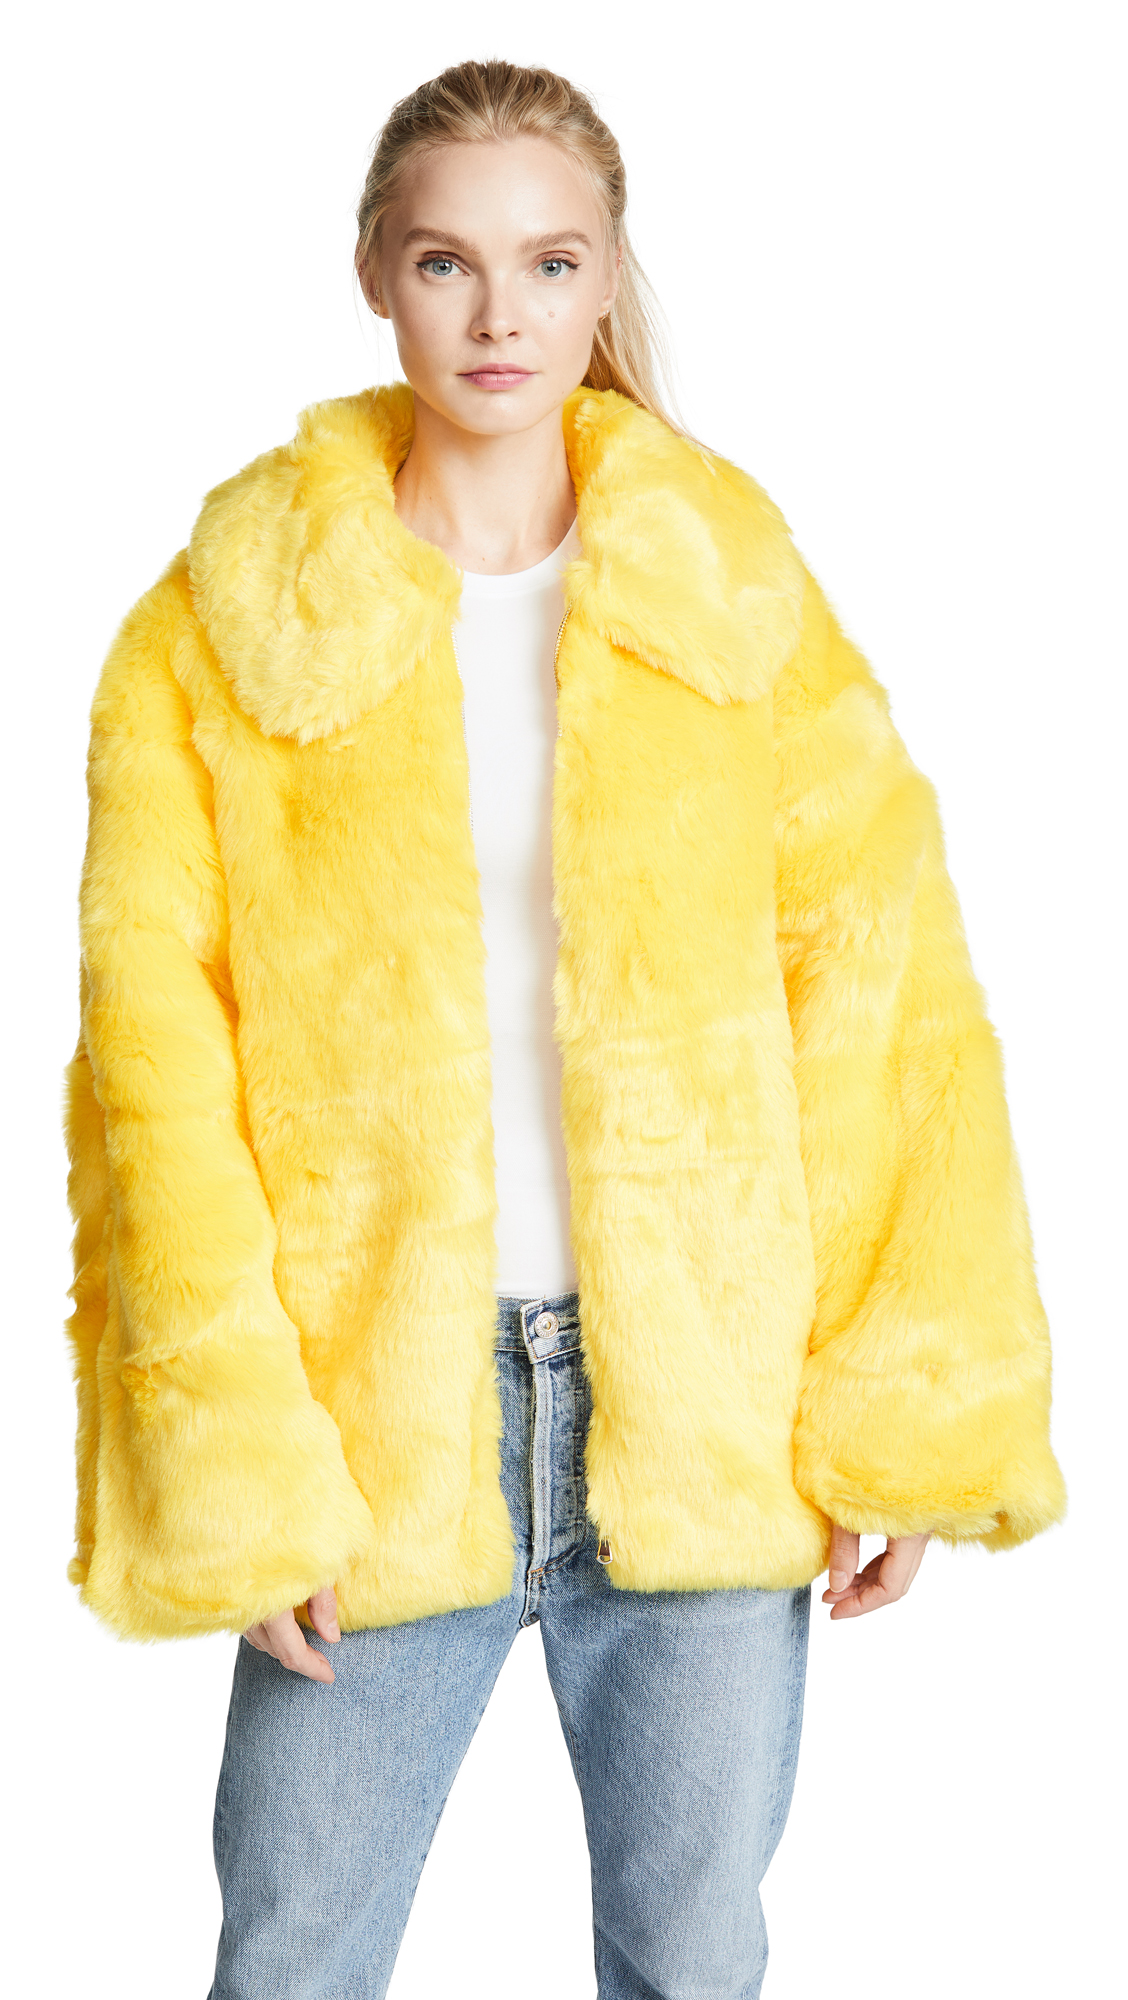 I.AM. GIA Capella Jacket In Yellow